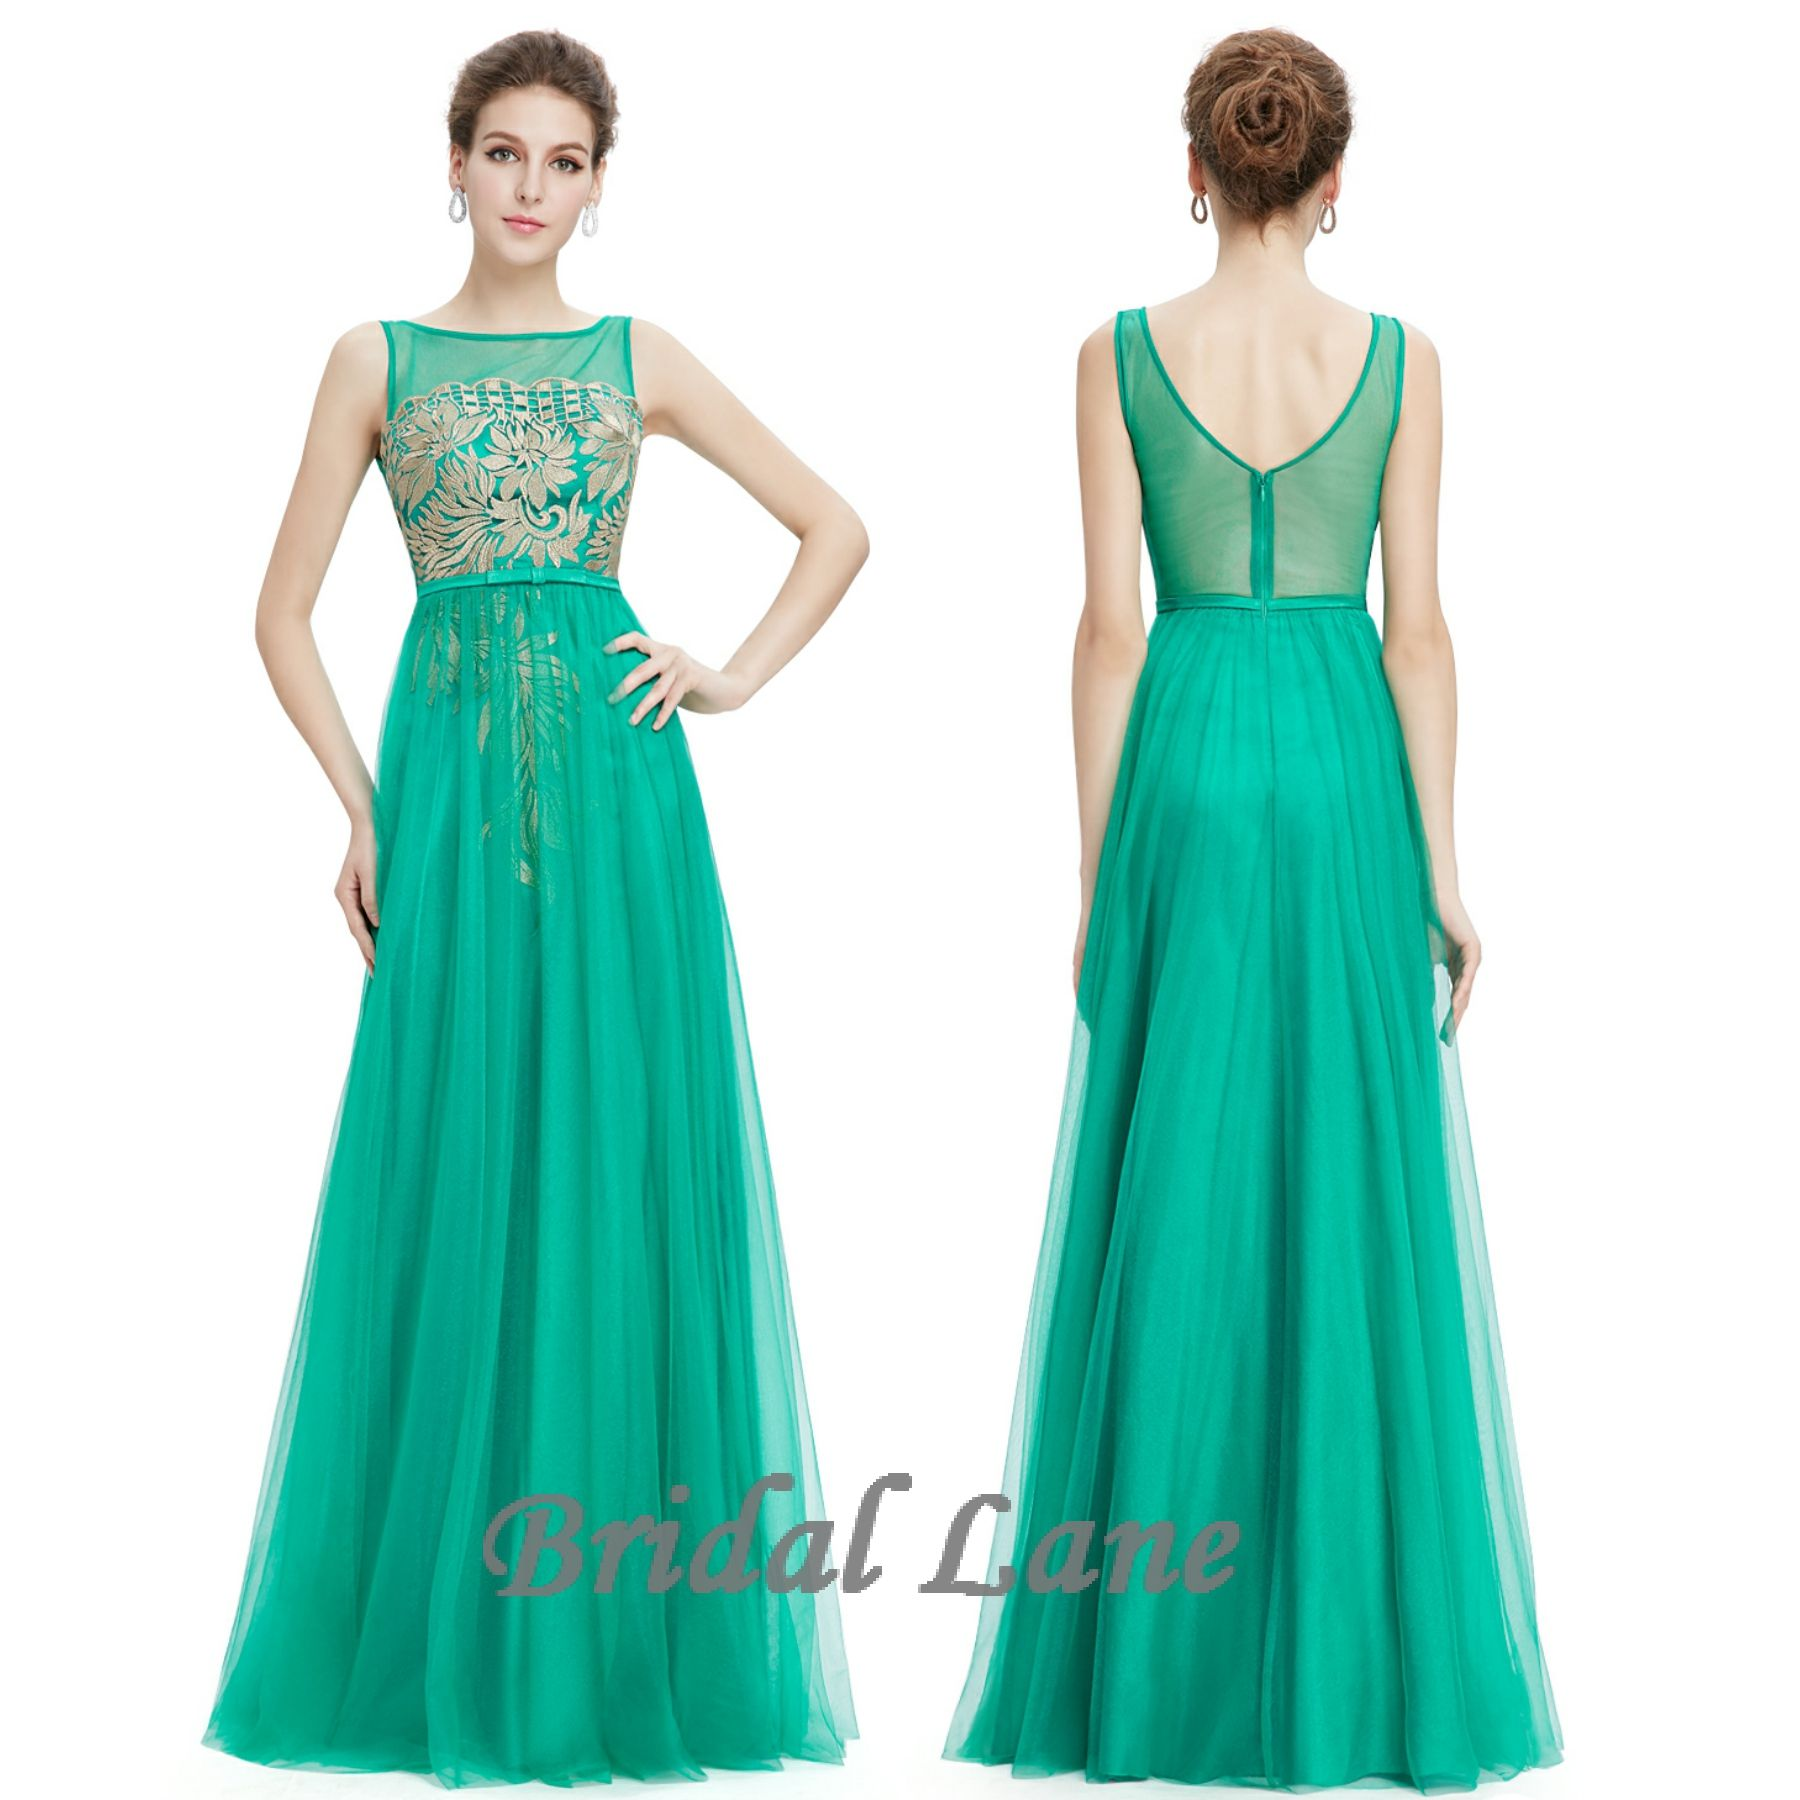 Matric dance dresses matric farewell dresses evening dresses pictures - Turquoise Evening Dresses For Matric Ball Matric Farewell In Cape Town Bridal Lane